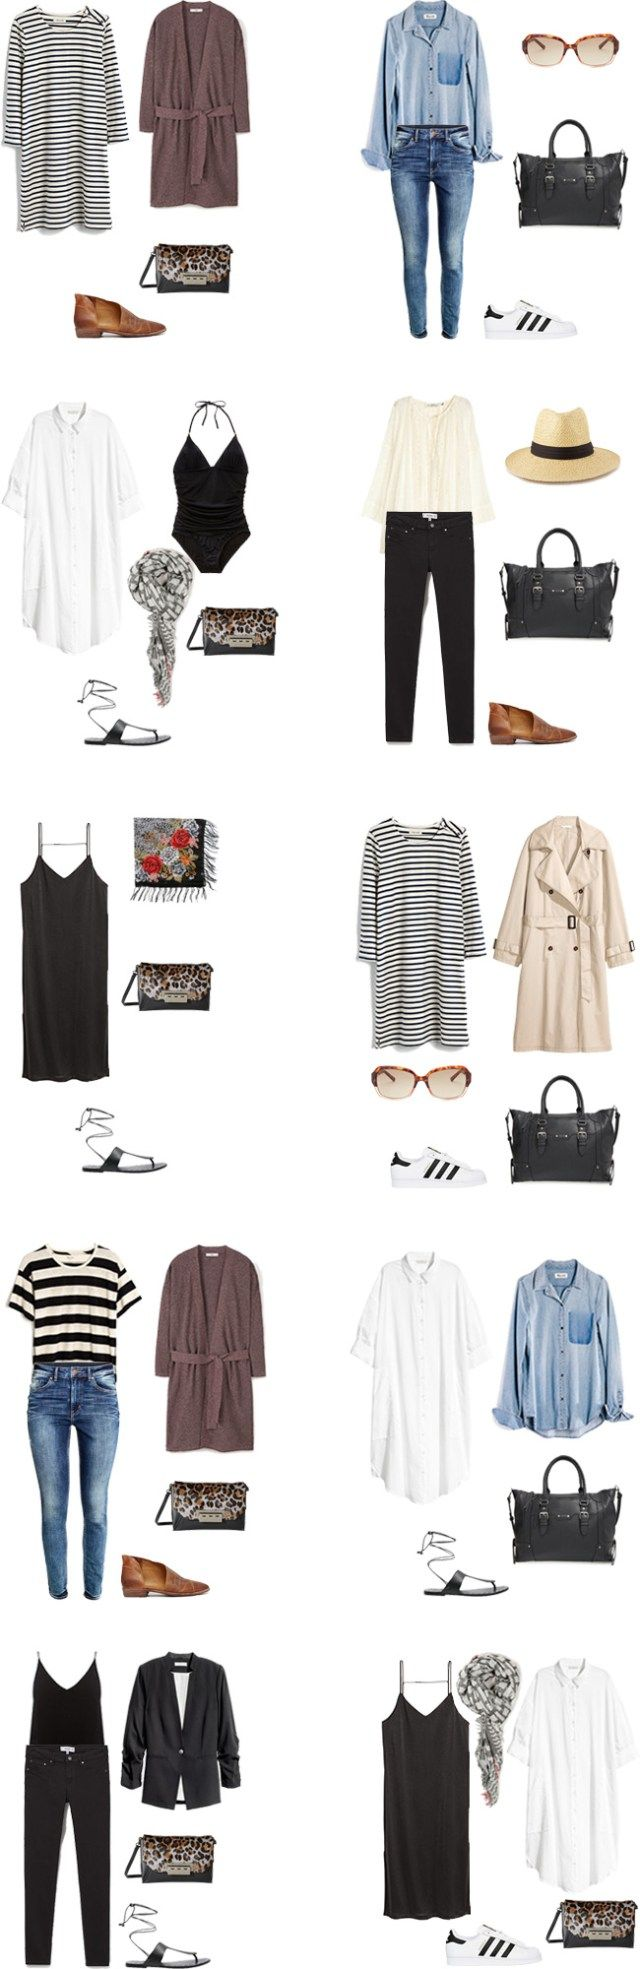 844 Best Images About Packing On Pinterest